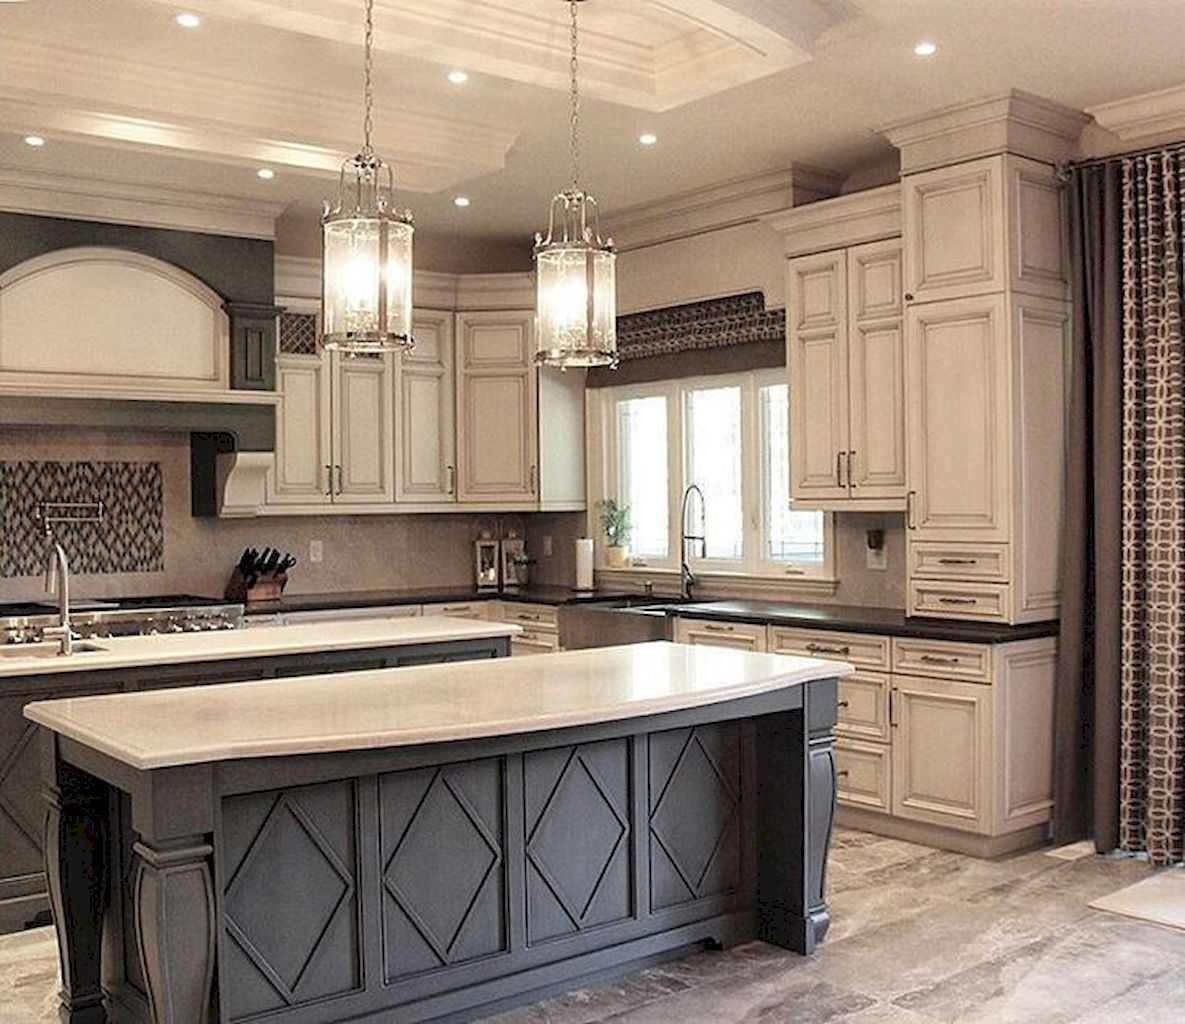 07 Farmhouse Gray Kitchen Cabinet Design Ideas Antique White Kitchen Popular Kitchen Colors Antique White Kitchen Cabinets